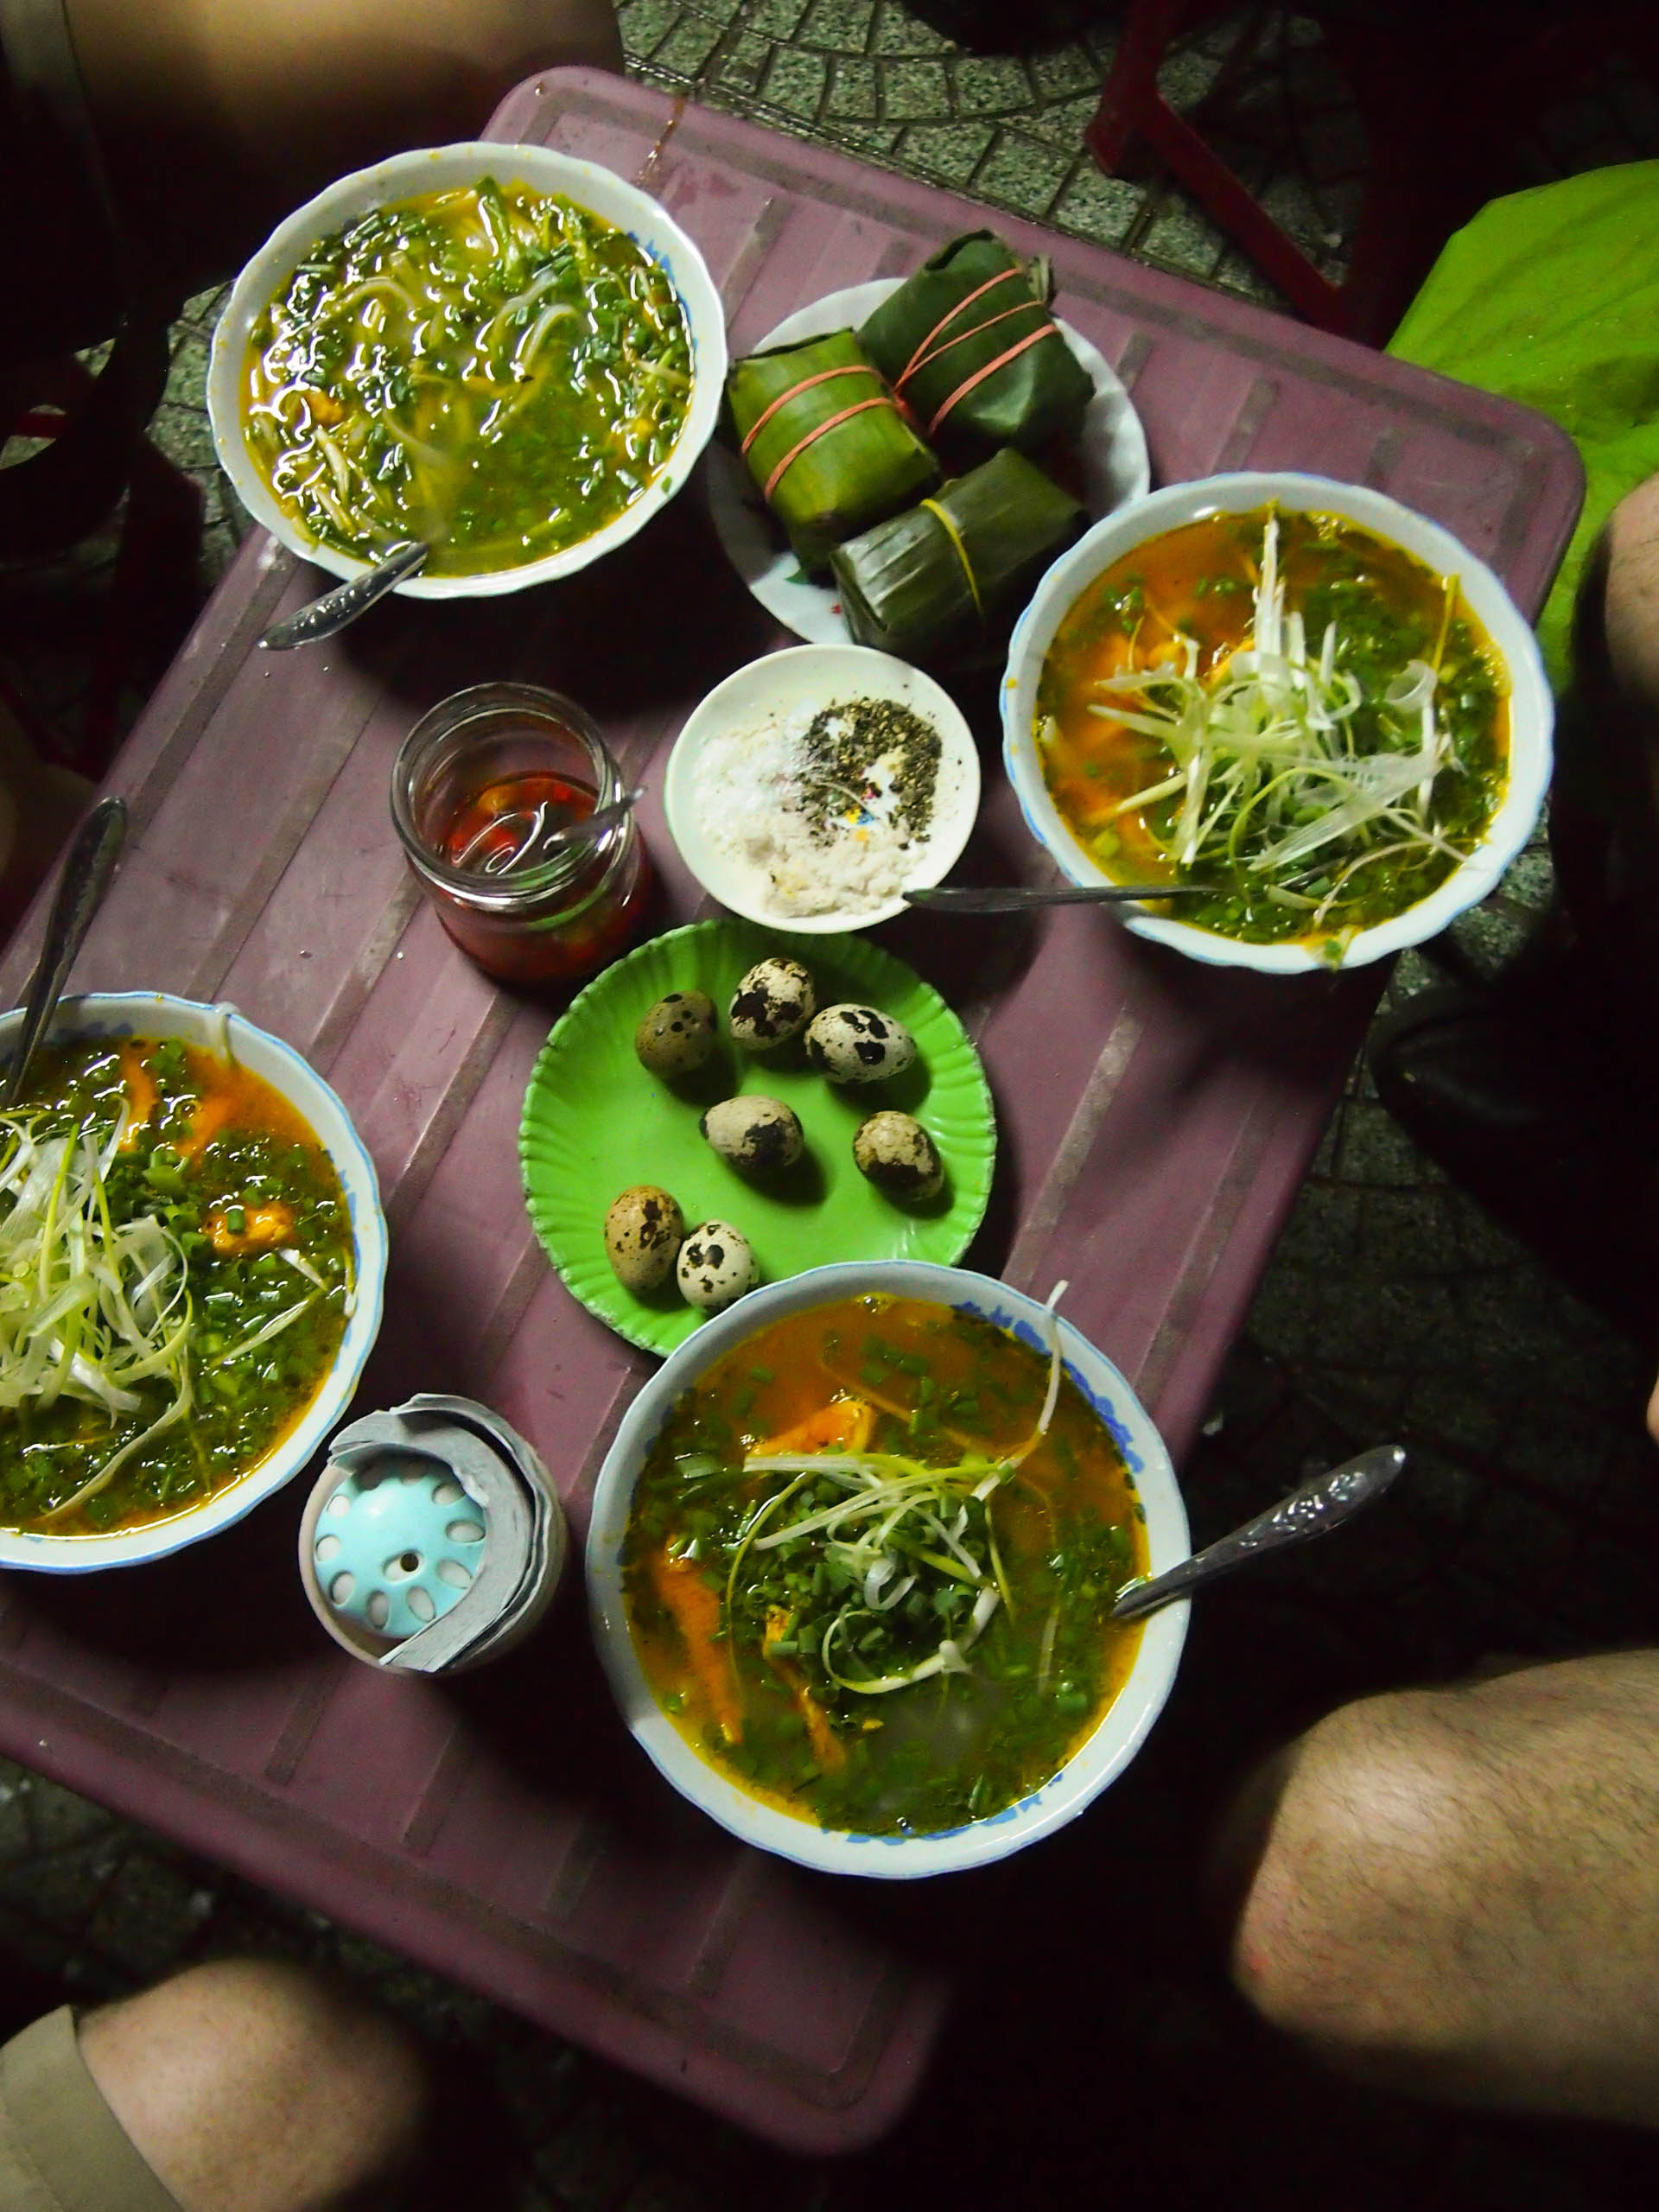 Banh canh, hard boiled quail eggs, and banh chung (stuffed sticky rice wrapped in leaves). All this and four beers cost $10. For four people.